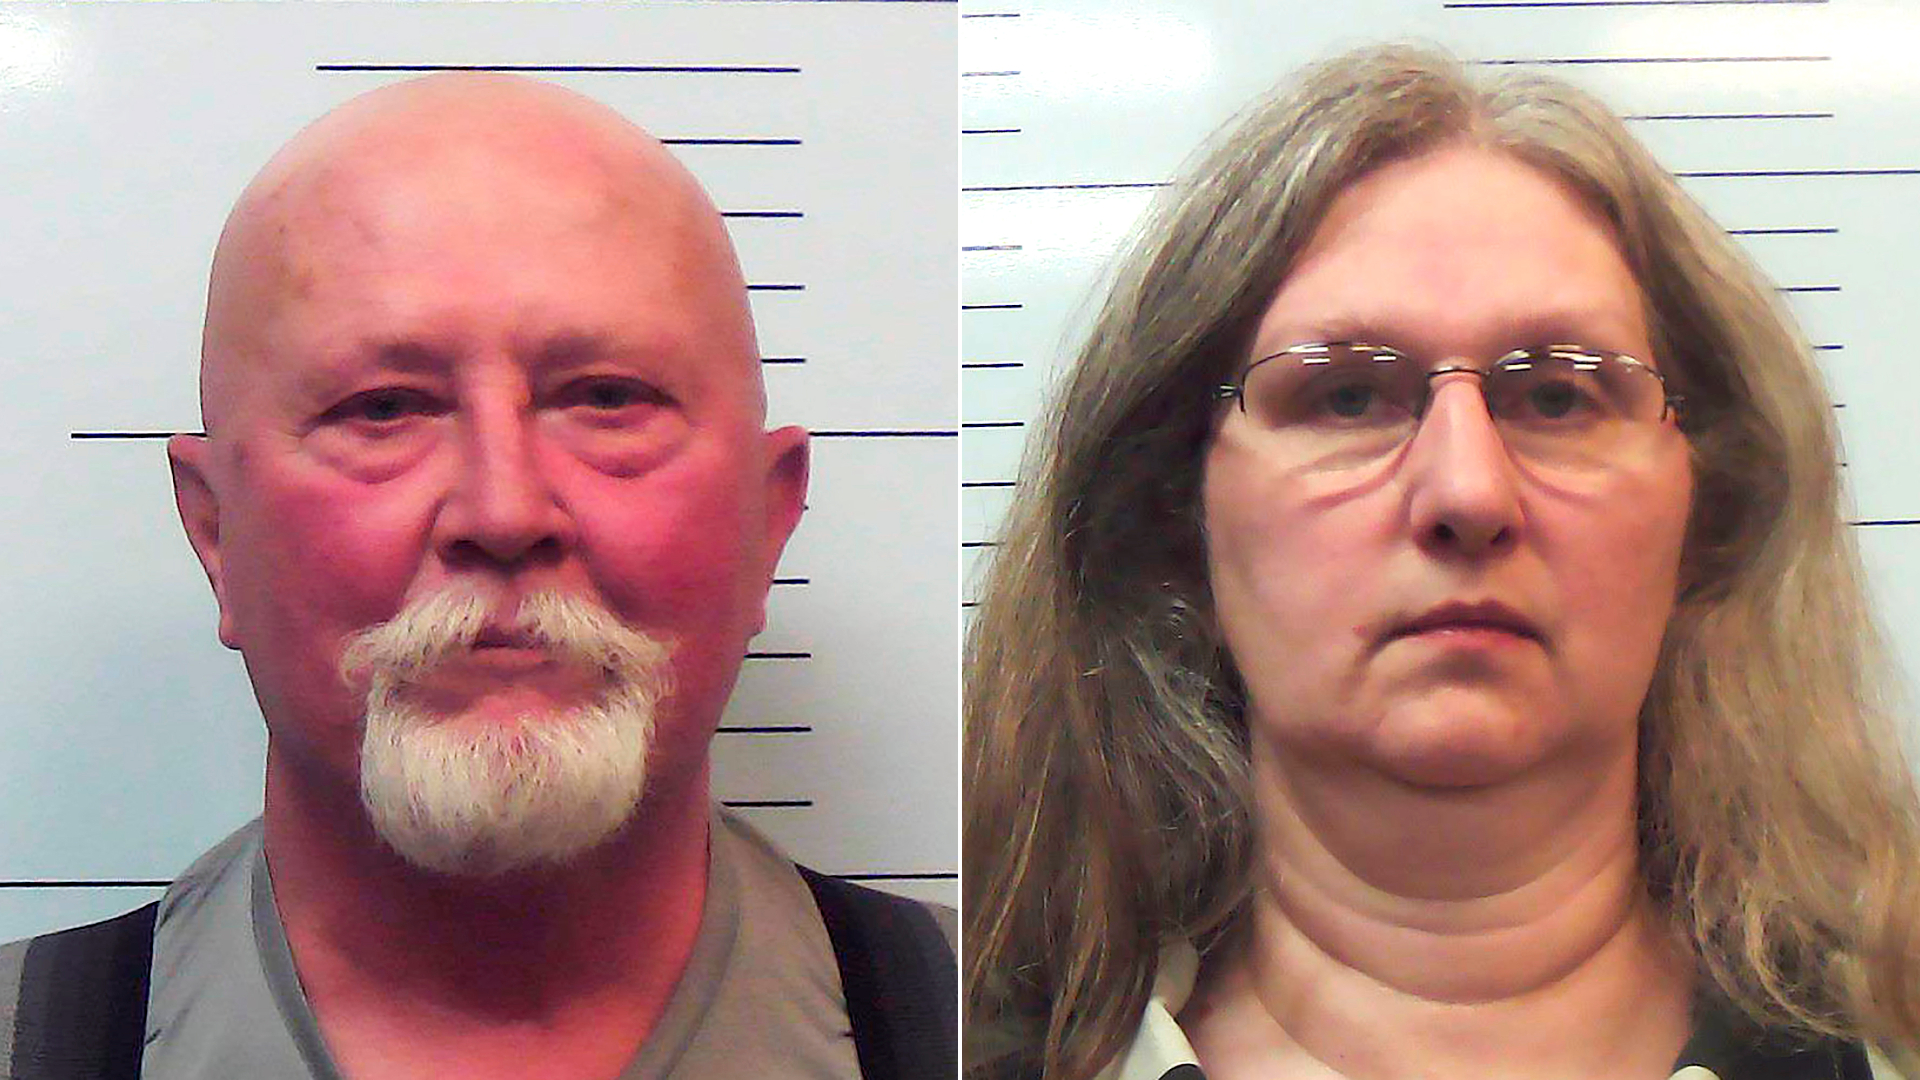 Boyd Householder, left, and Stephanie Householder are seen in undated photos provided by the Missouri Attorney General's Office.